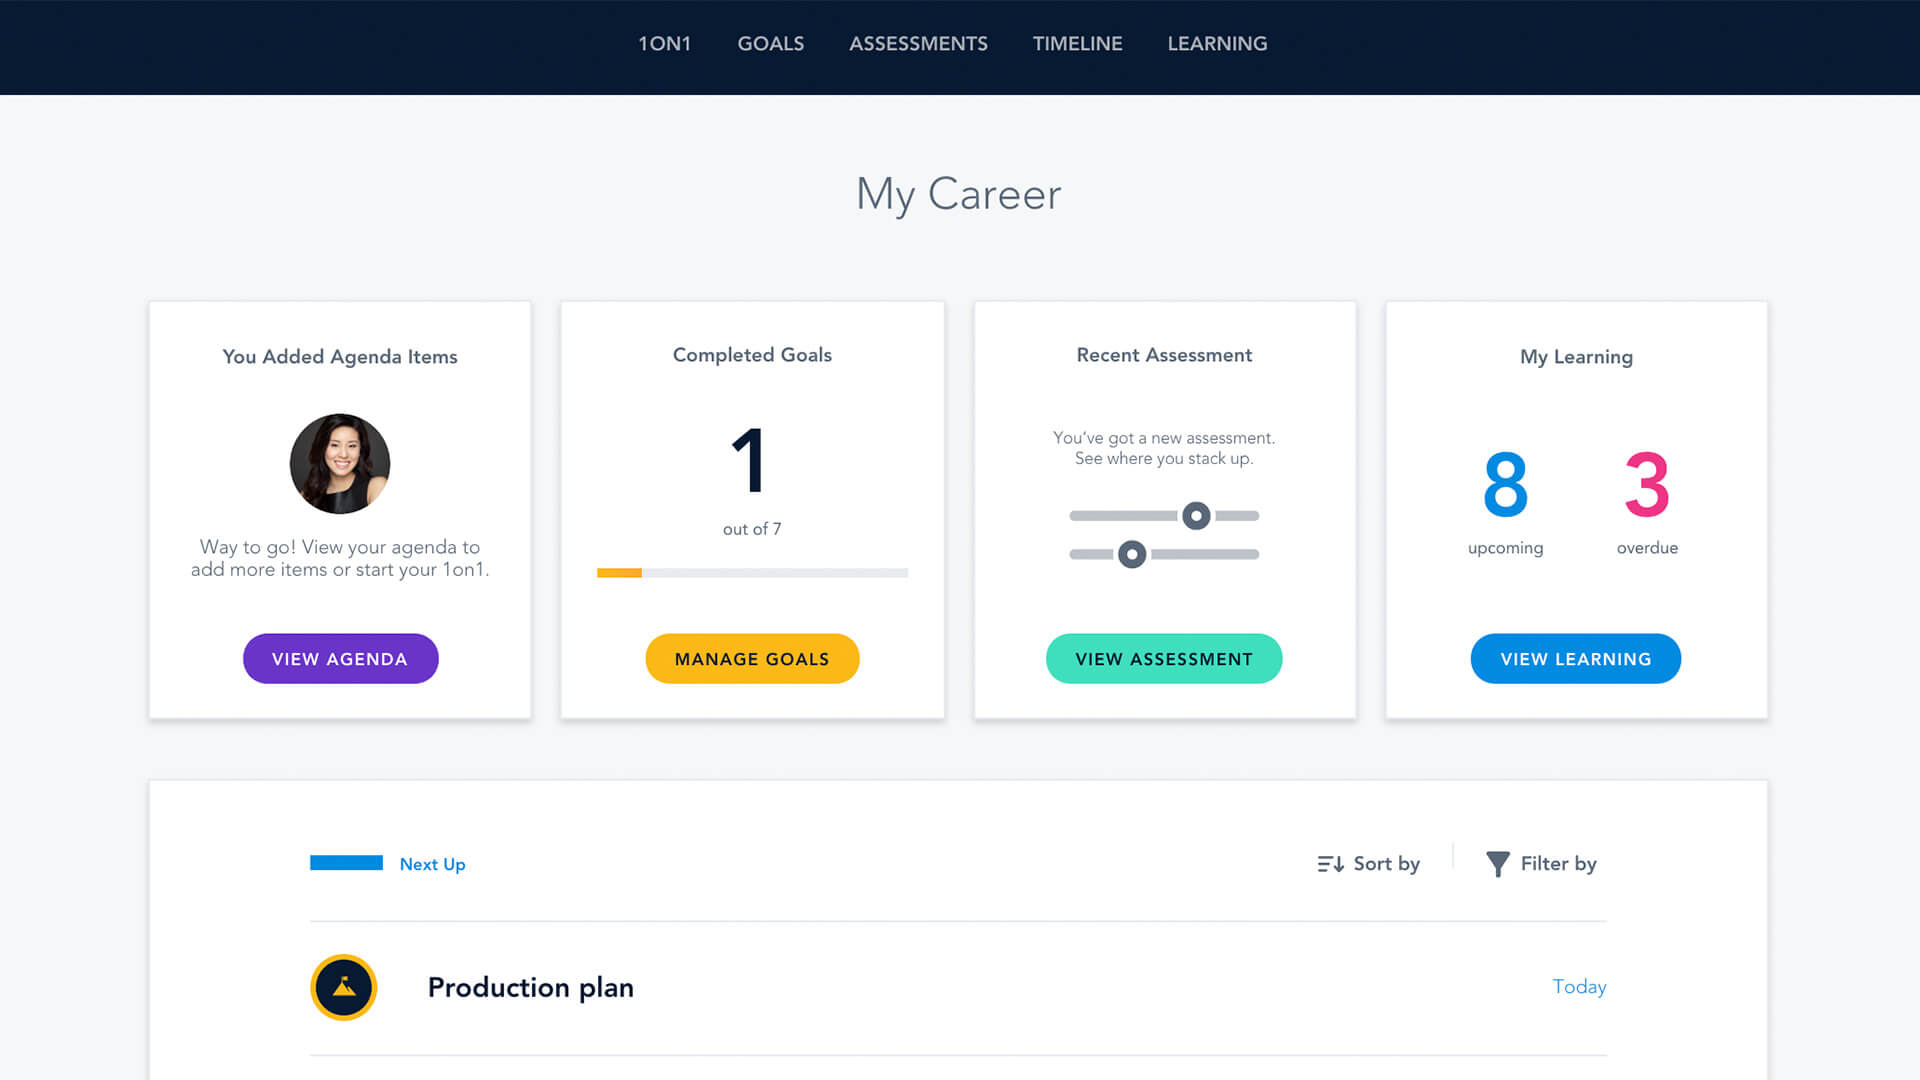 CAREER PLANNING: Bridge makes it easy for employees to check the status of their goals, learnings, assessments, 1:1 manager agenda and more!